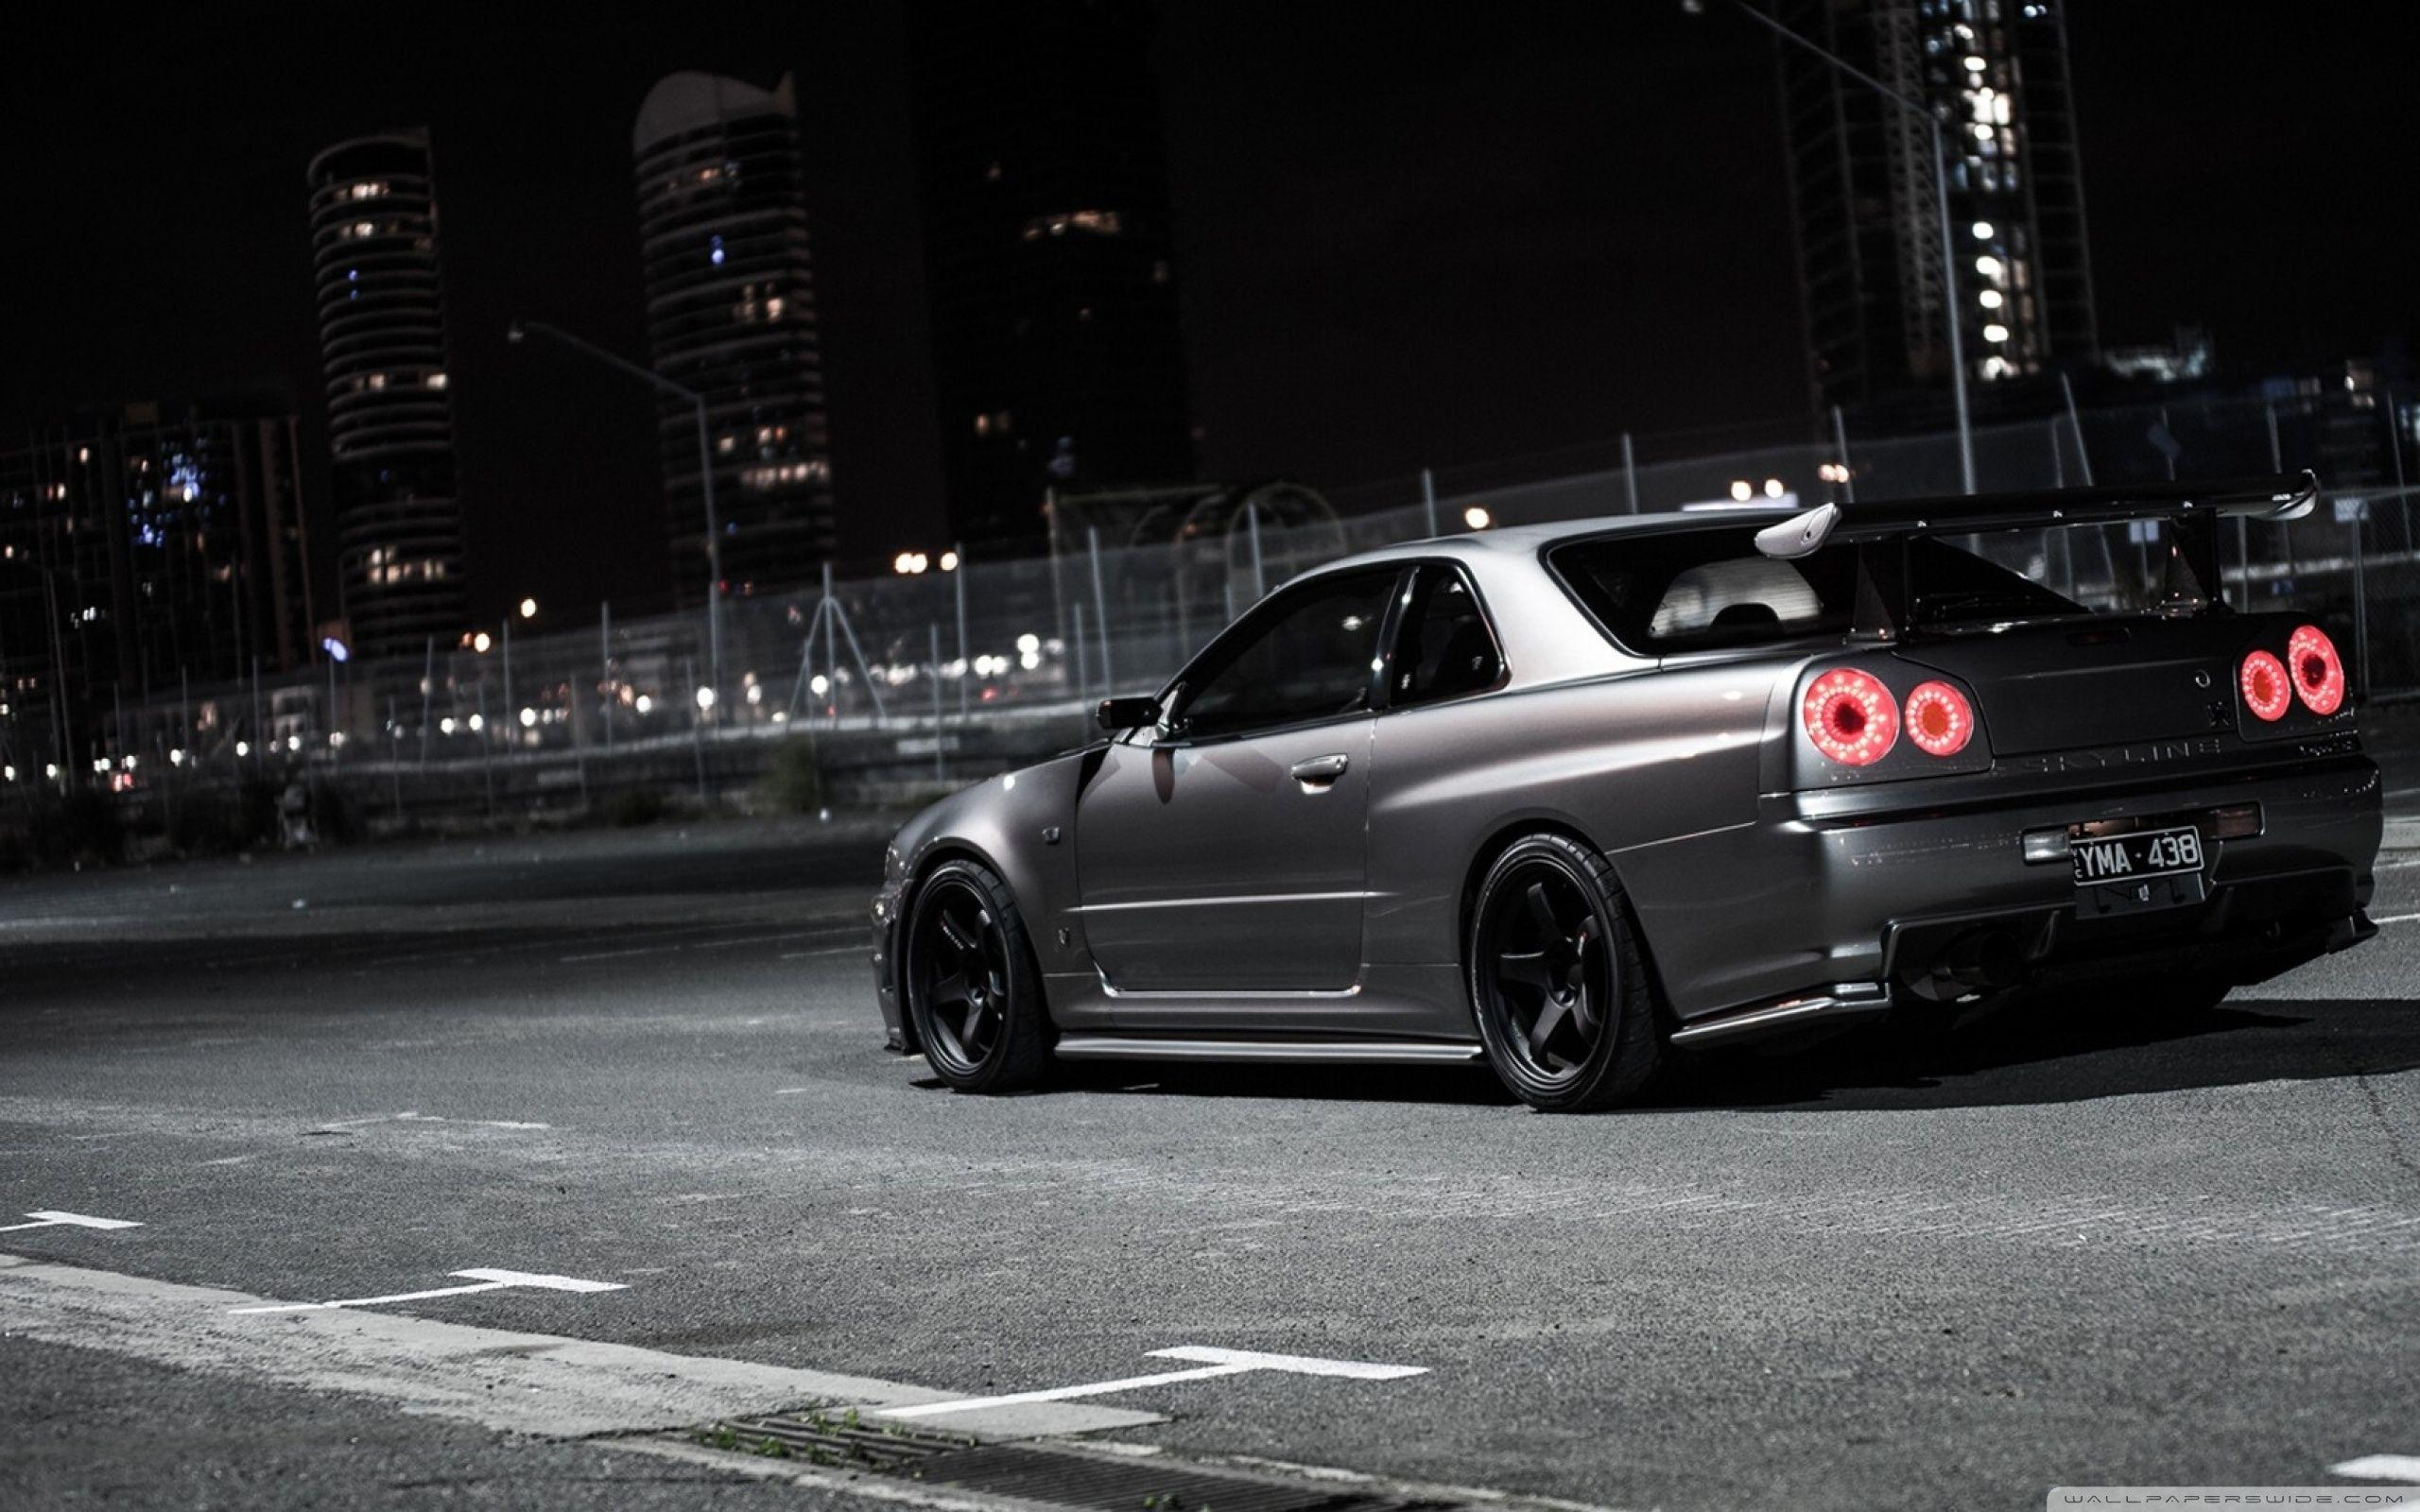 Nissan Skyline Hd Wallpapers Wallpaper Cave